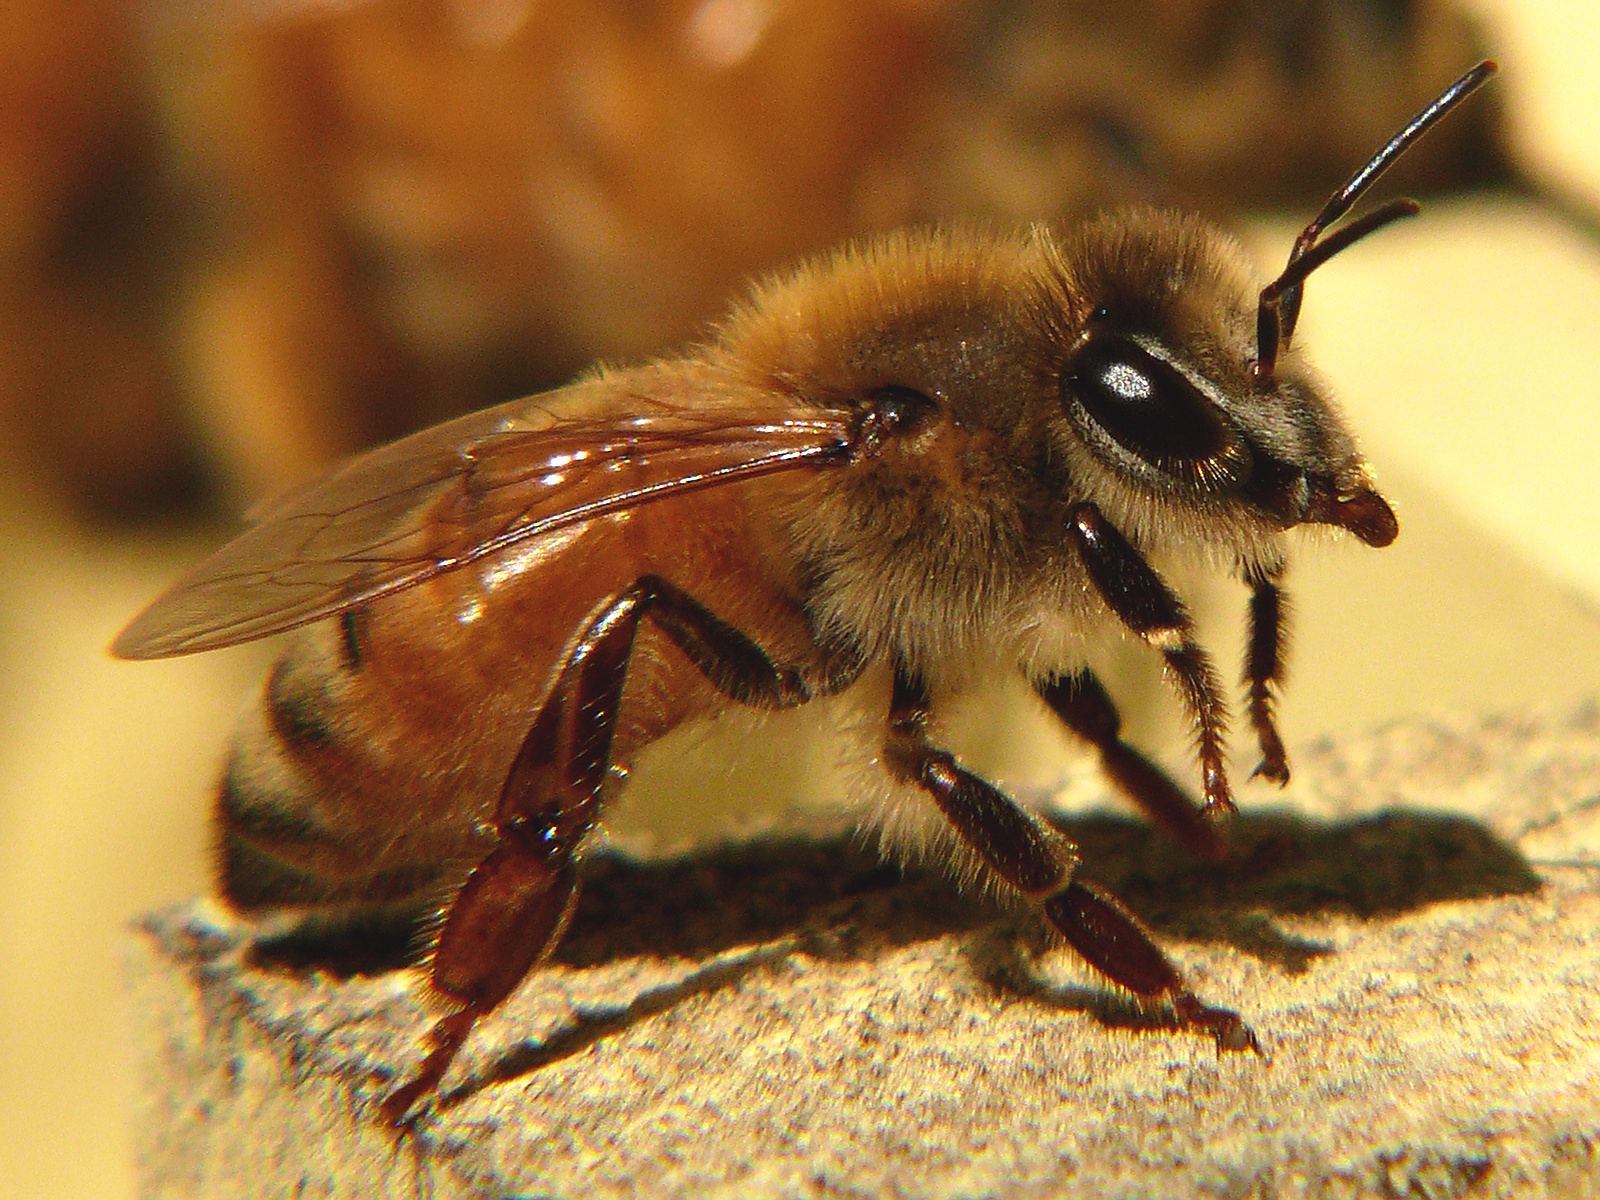 The bumble bee is the most common type of bee with around 250 different species of the bumble bee found around the world.